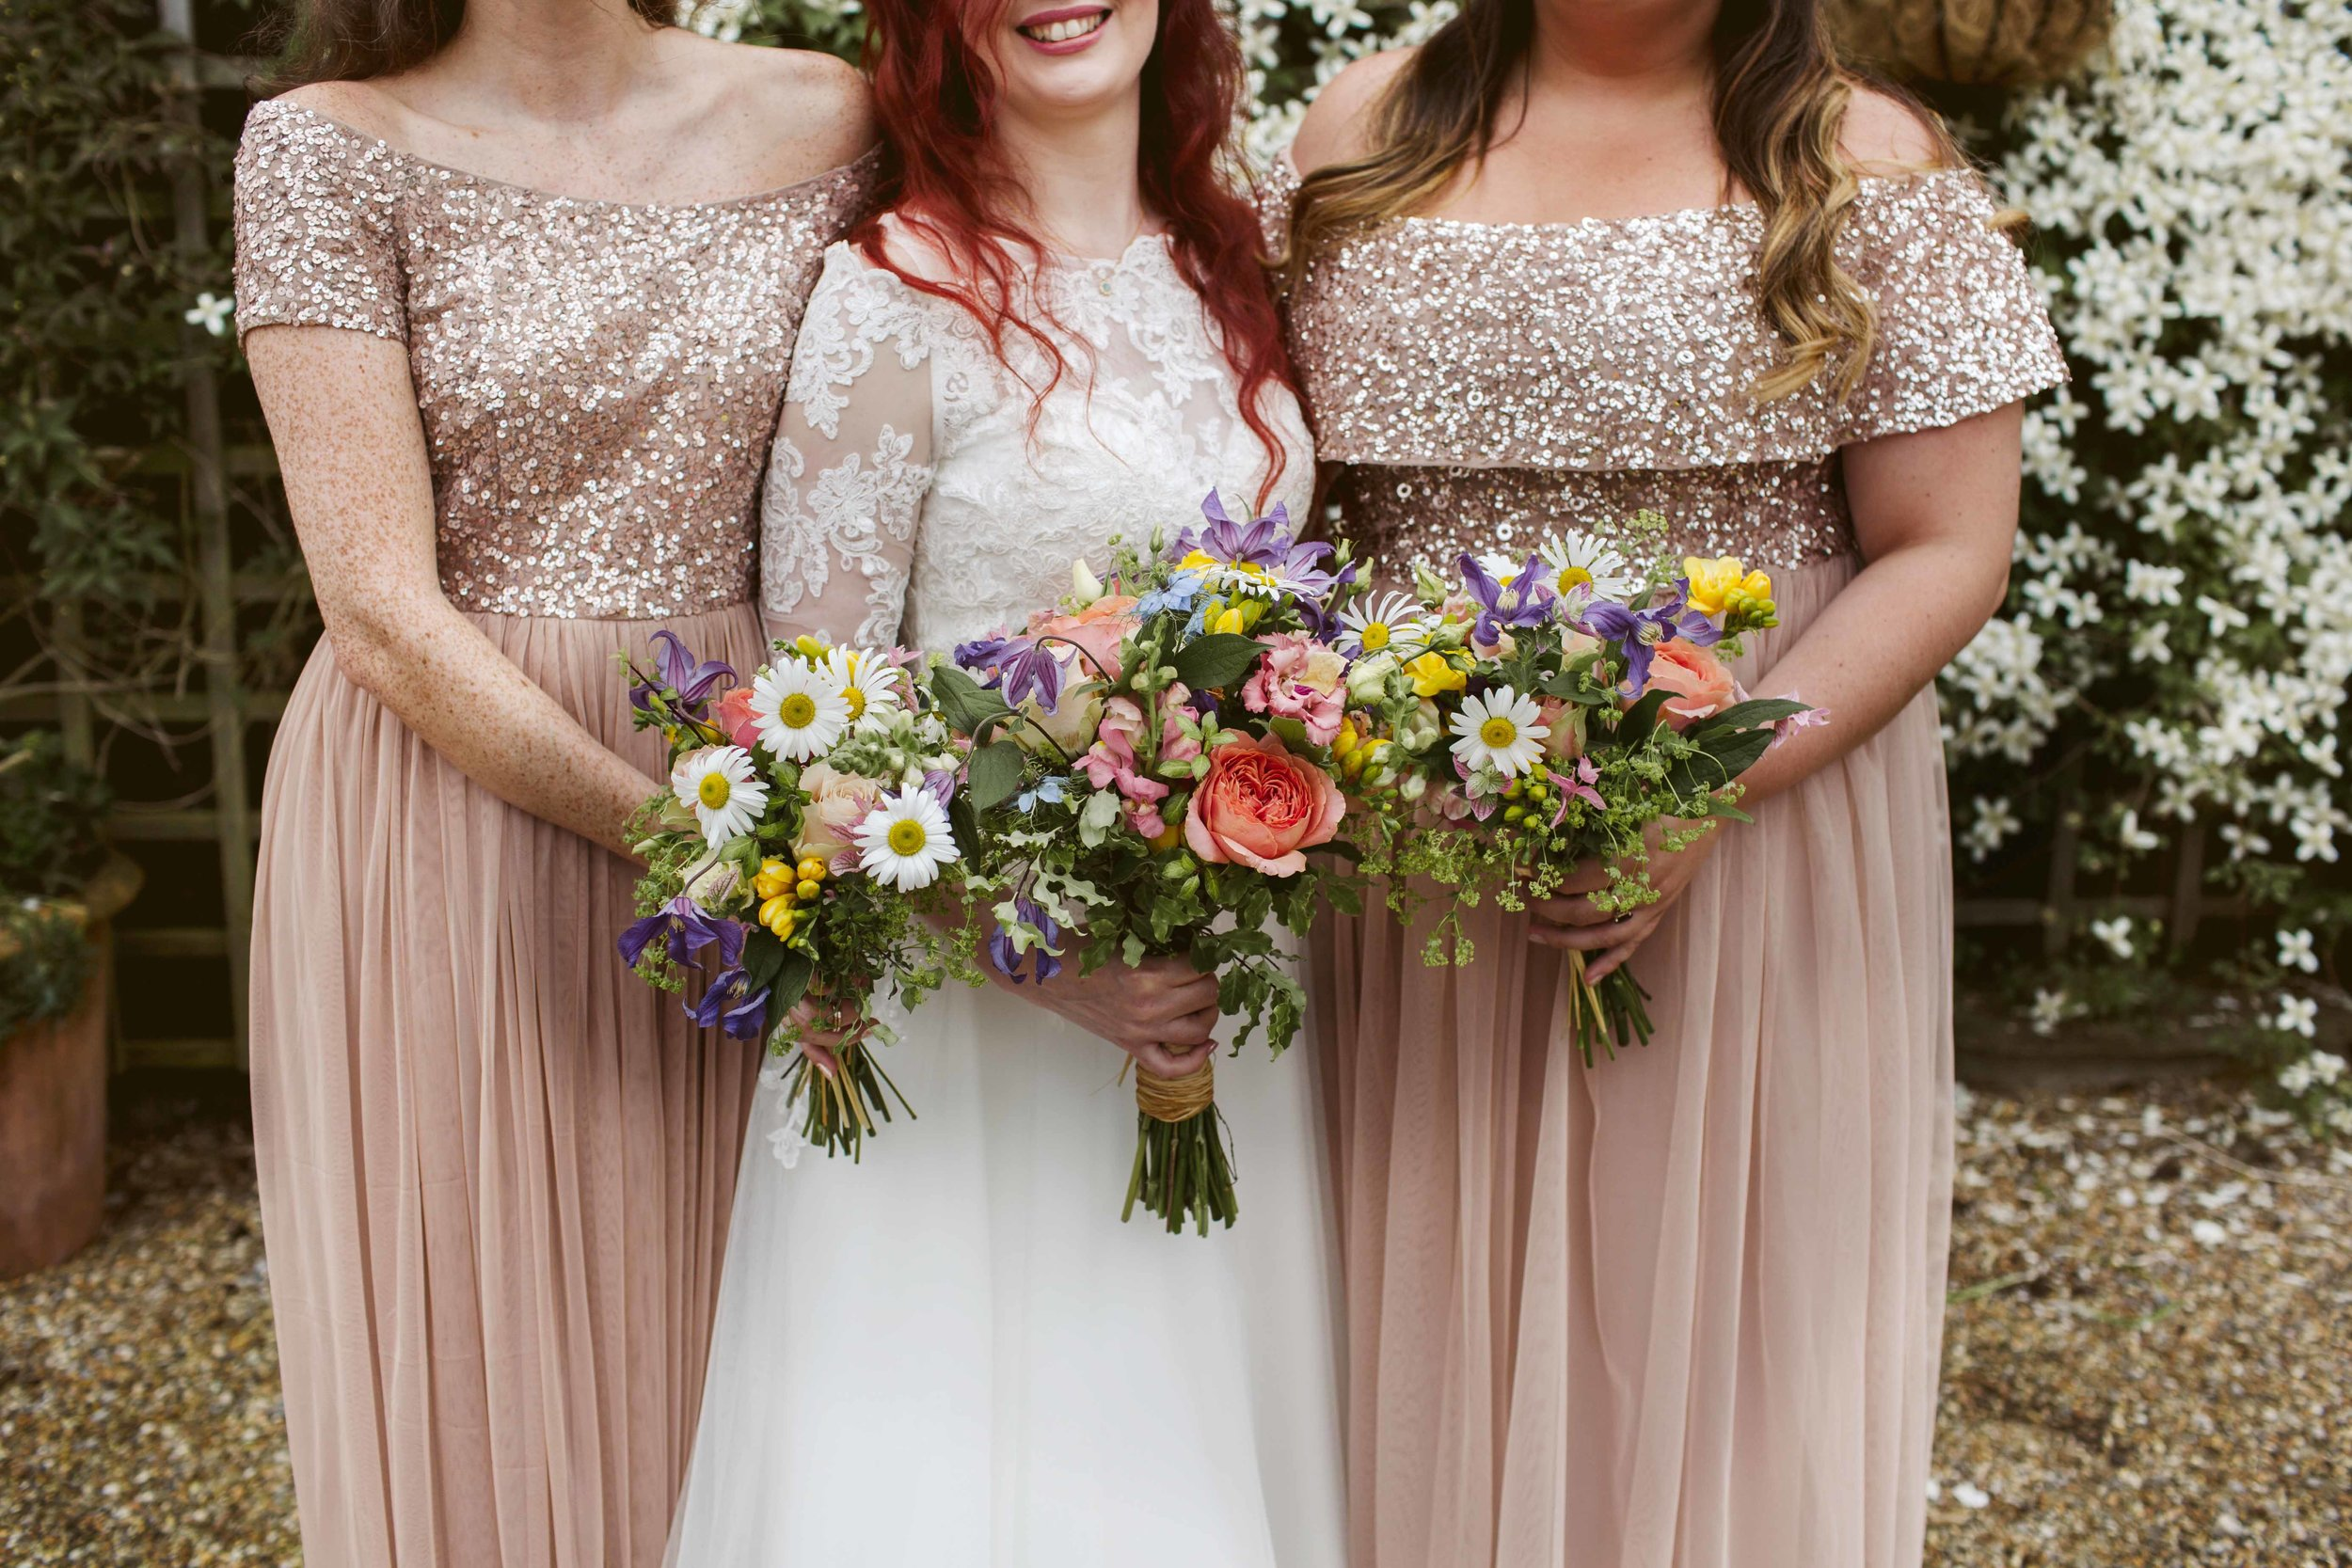 Bride and bridesmaids summer.jpg